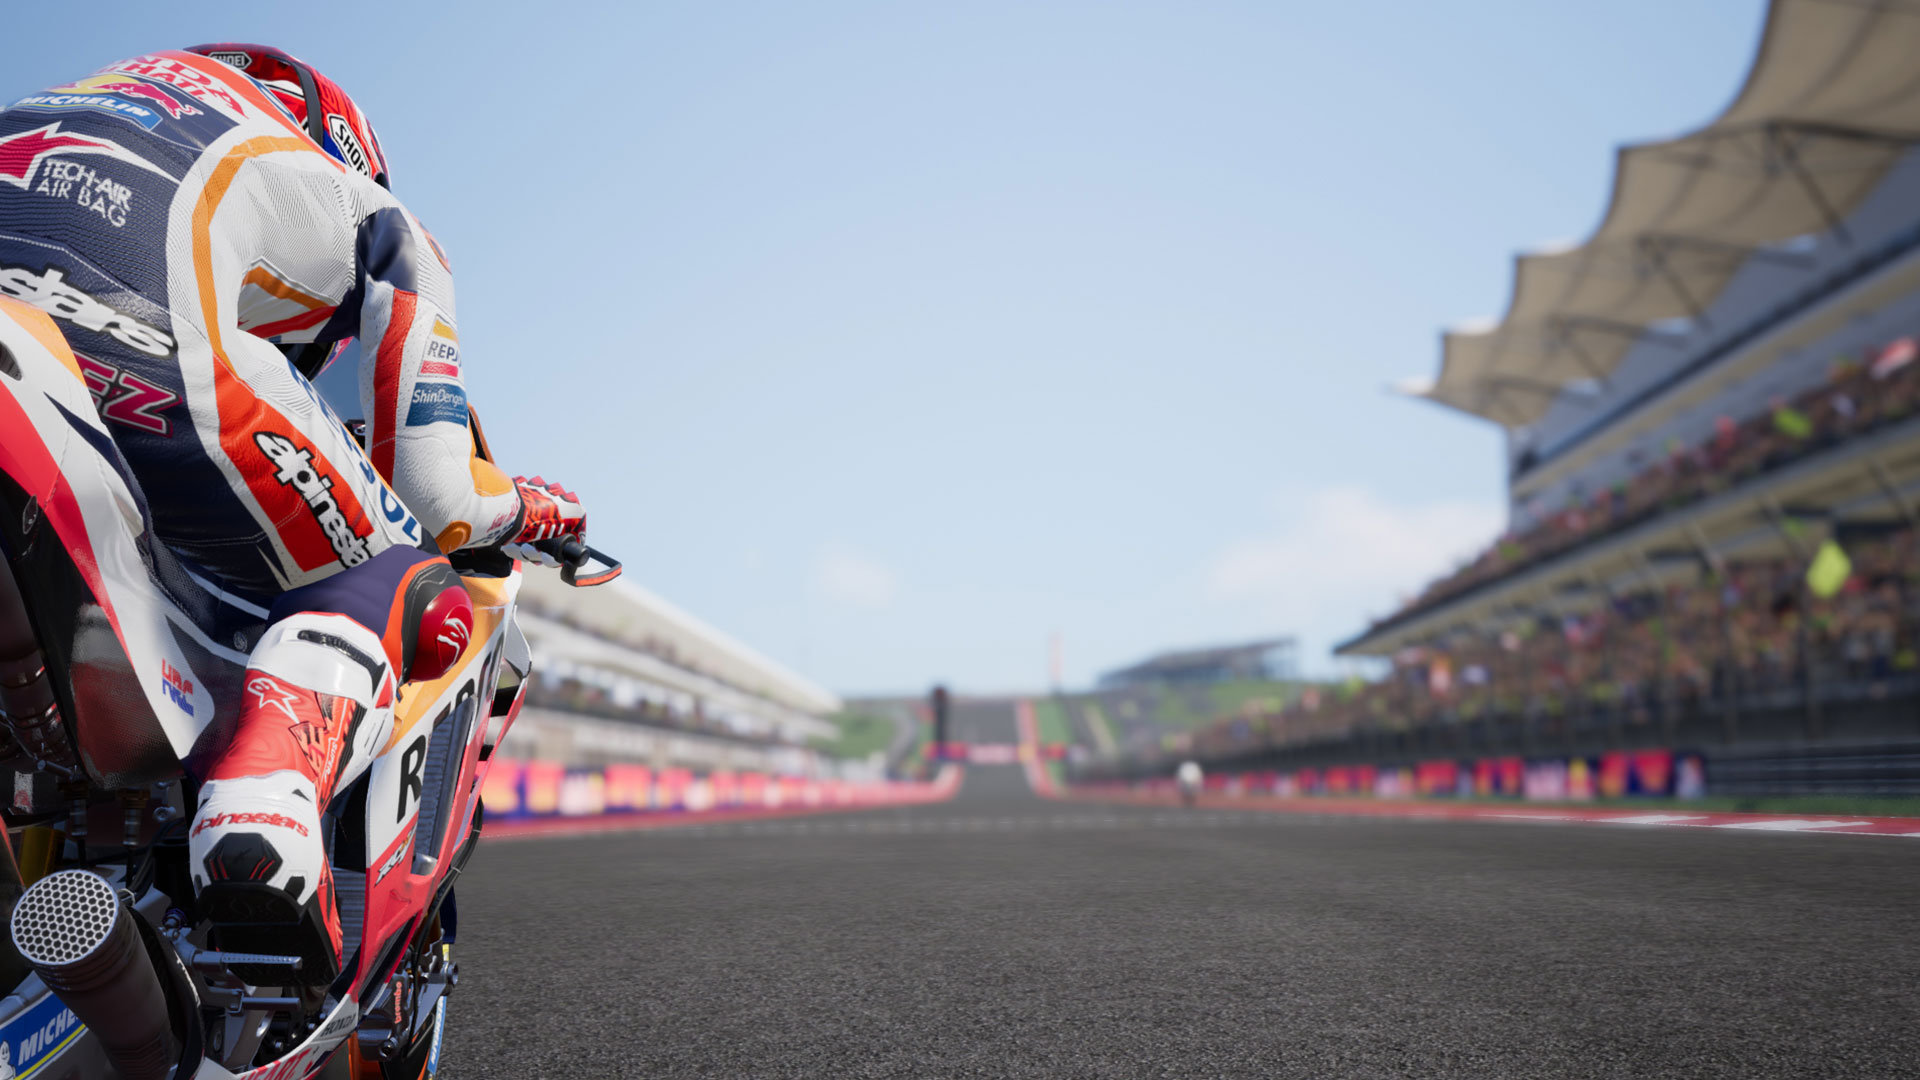 motogp18-screenshots-05-ps4-us-07june201